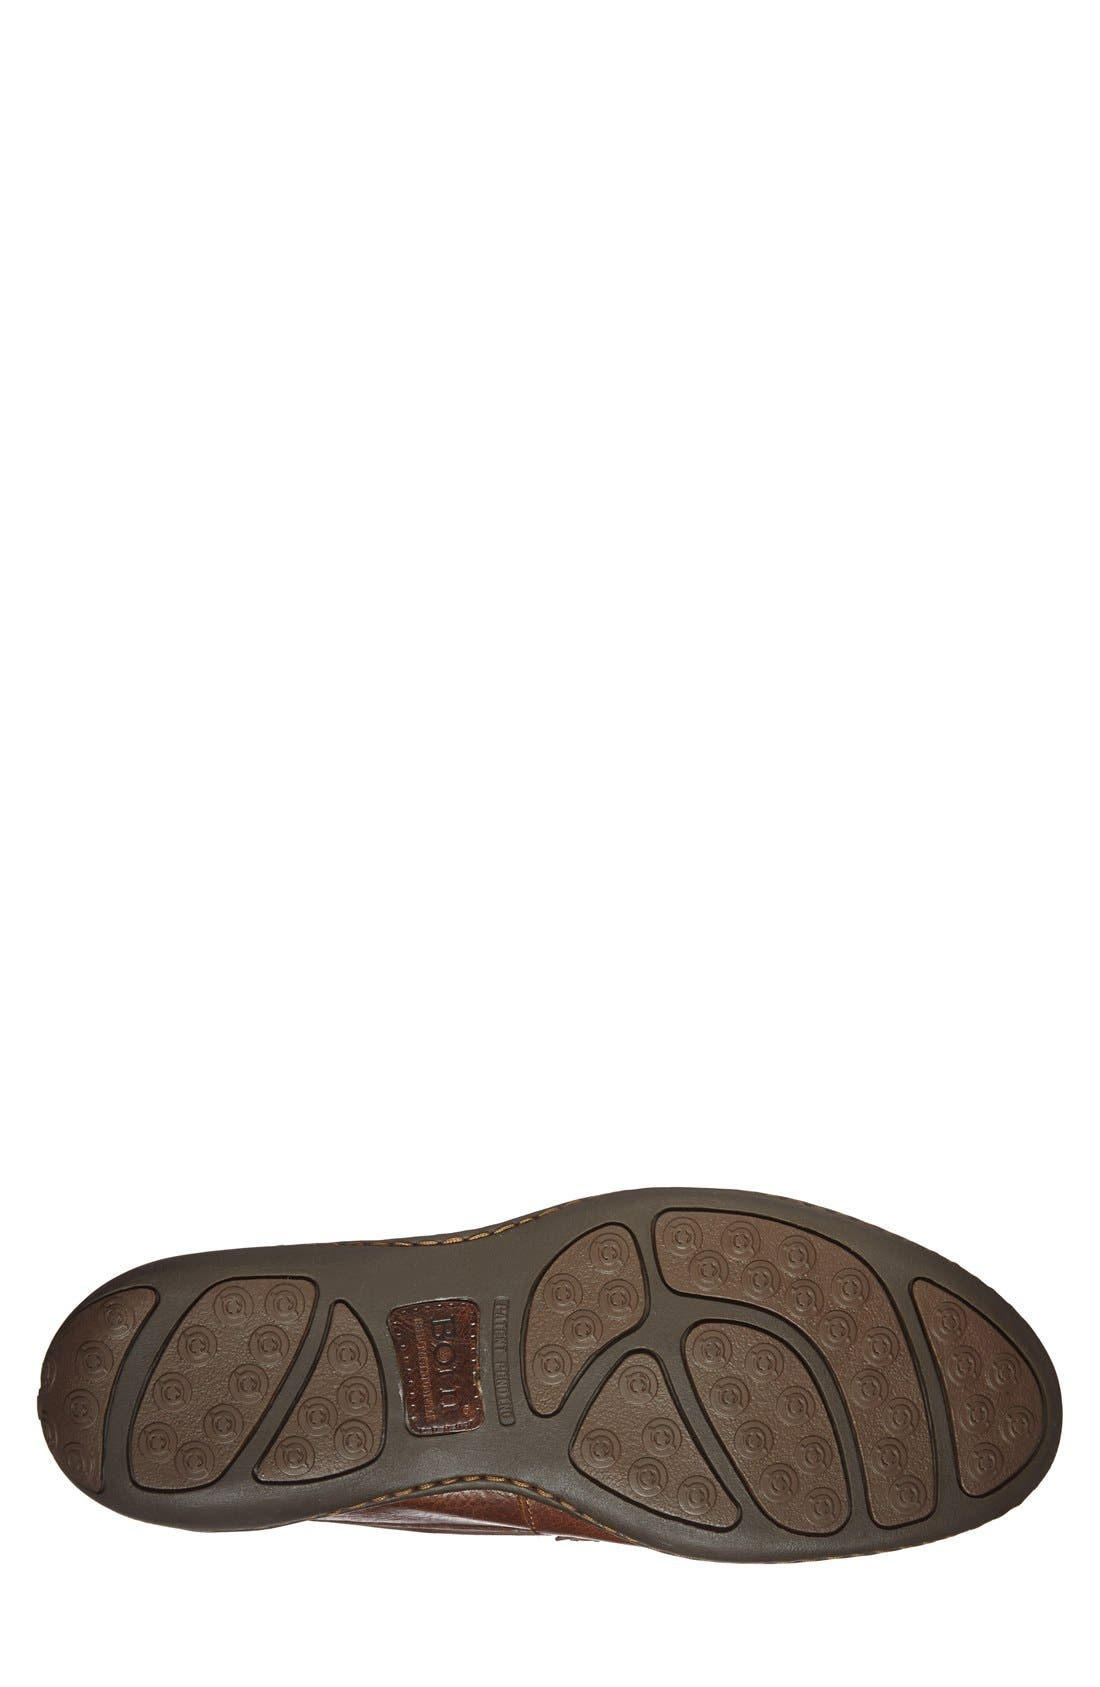 'Simon' Penny Loafer,                             Alternate thumbnail 4, color,                             CYMBAL